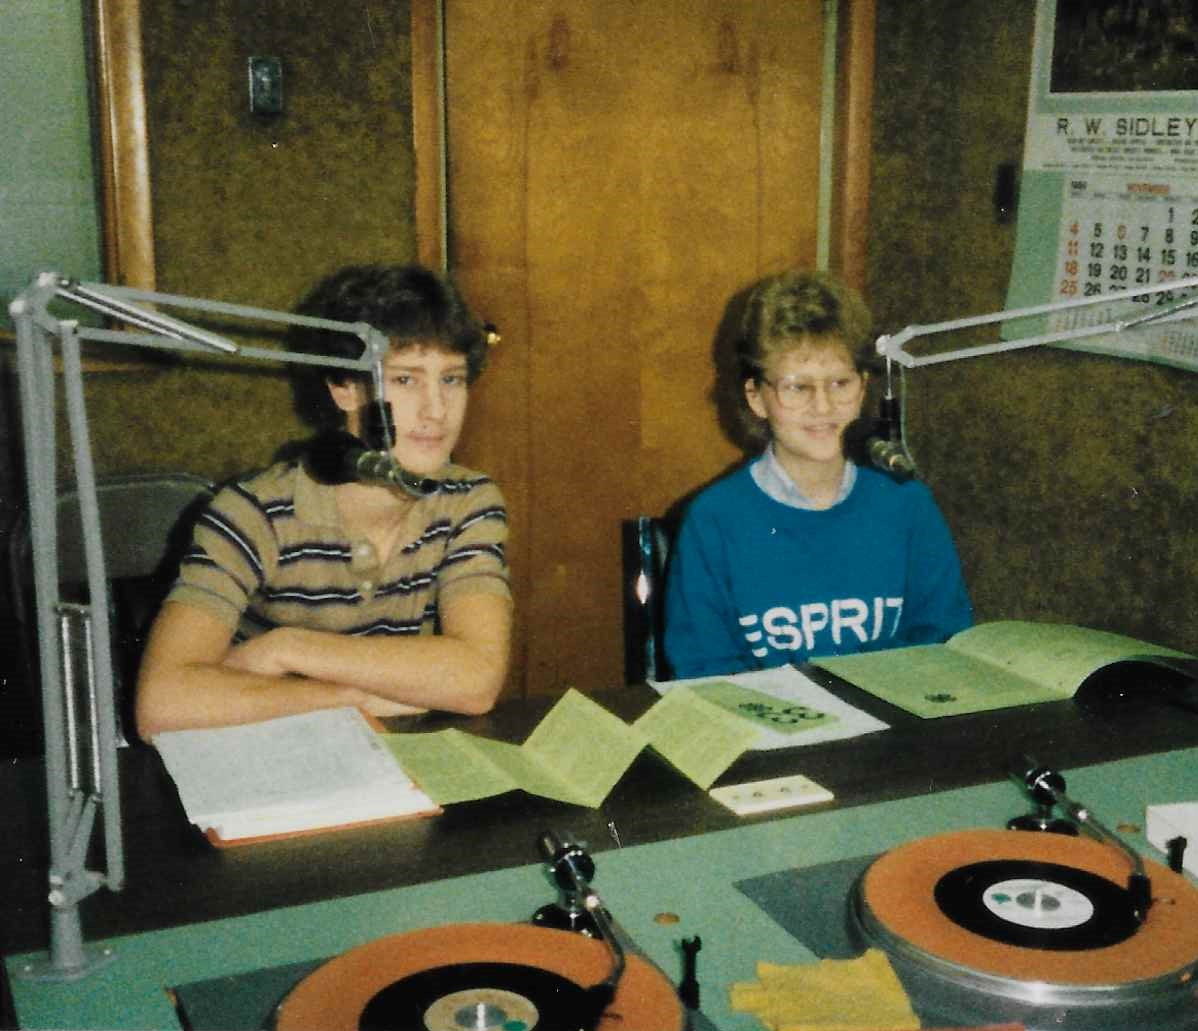 Lisa (right) and another 4-H member participating in a radio interview for 4-H.